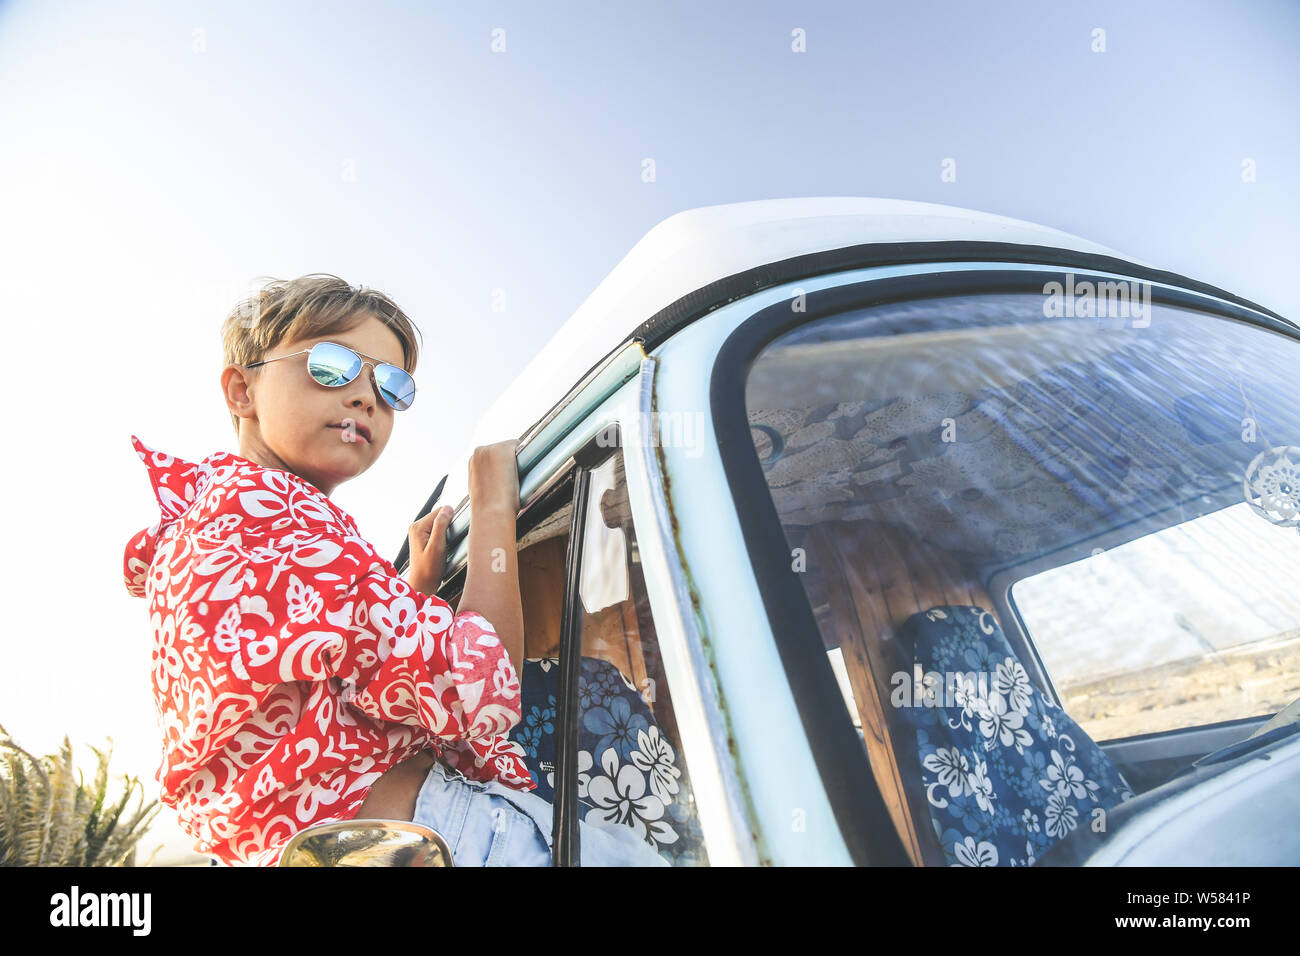 Handsome teenage boy with sunglasses posing charming out the window of the vintage van dressed as a flower child, hippie. Concept of freedom and light Stock Photo